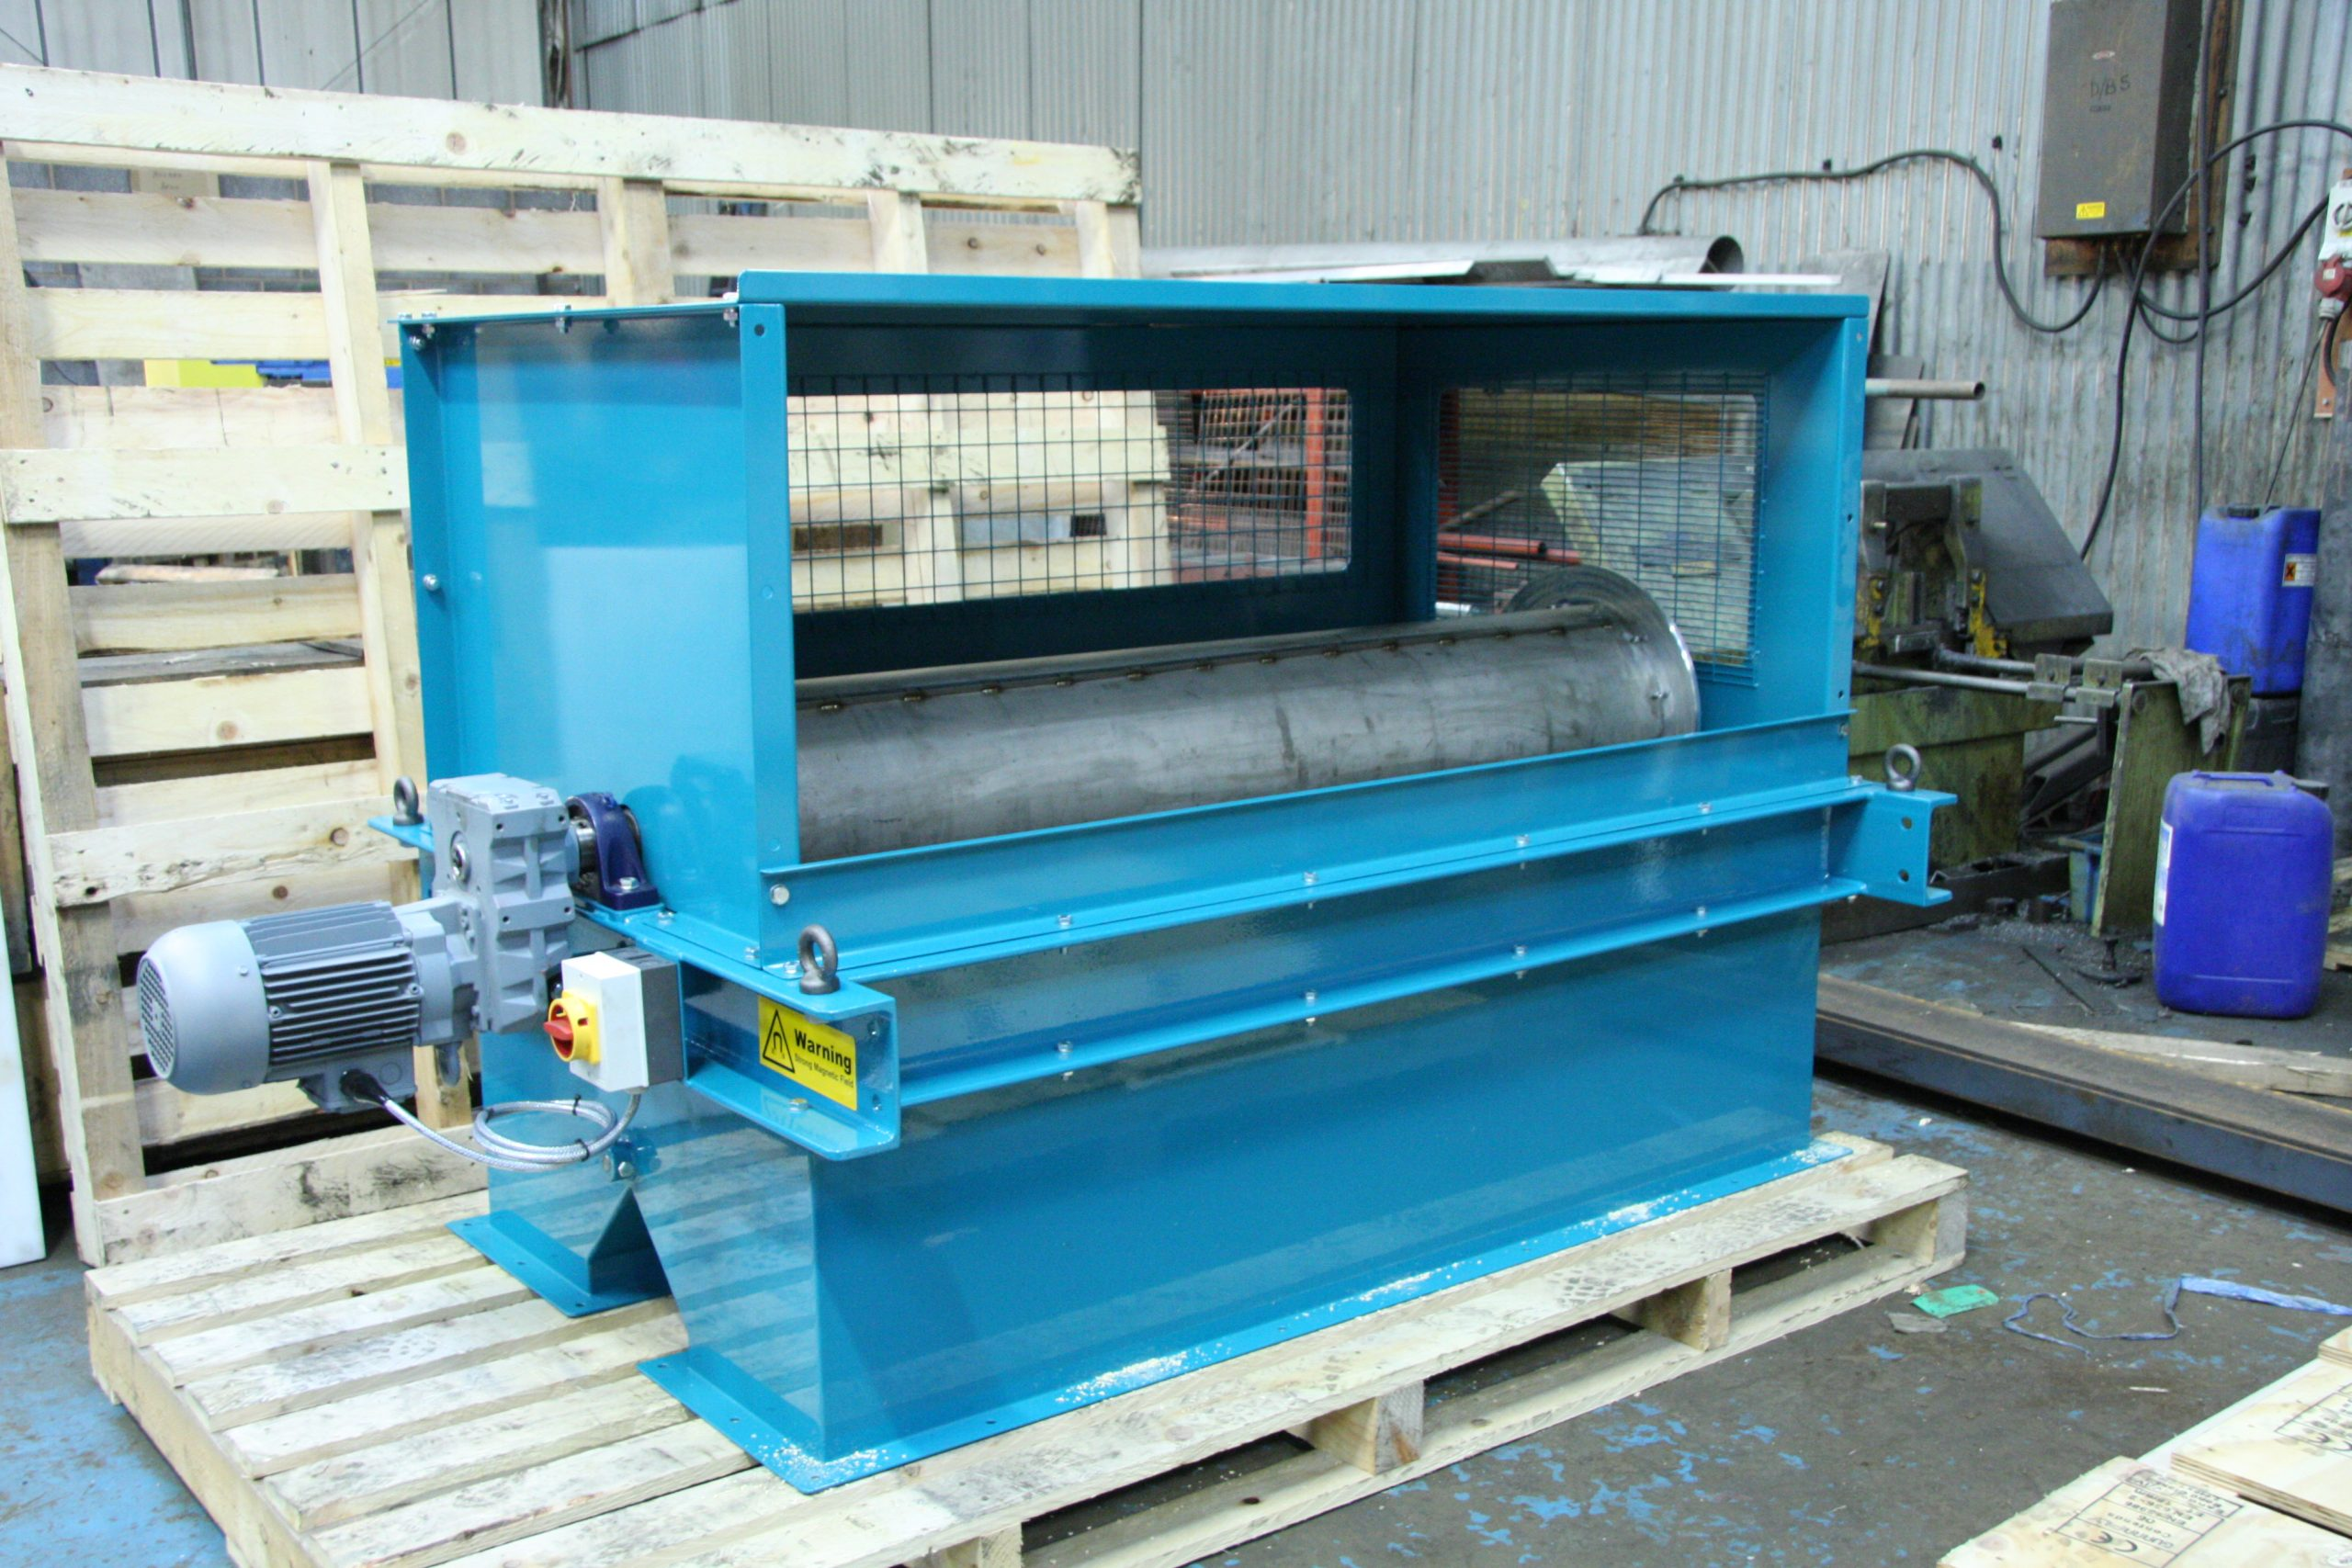 Drum magnet and guards for fitting at end of vibratory feeder